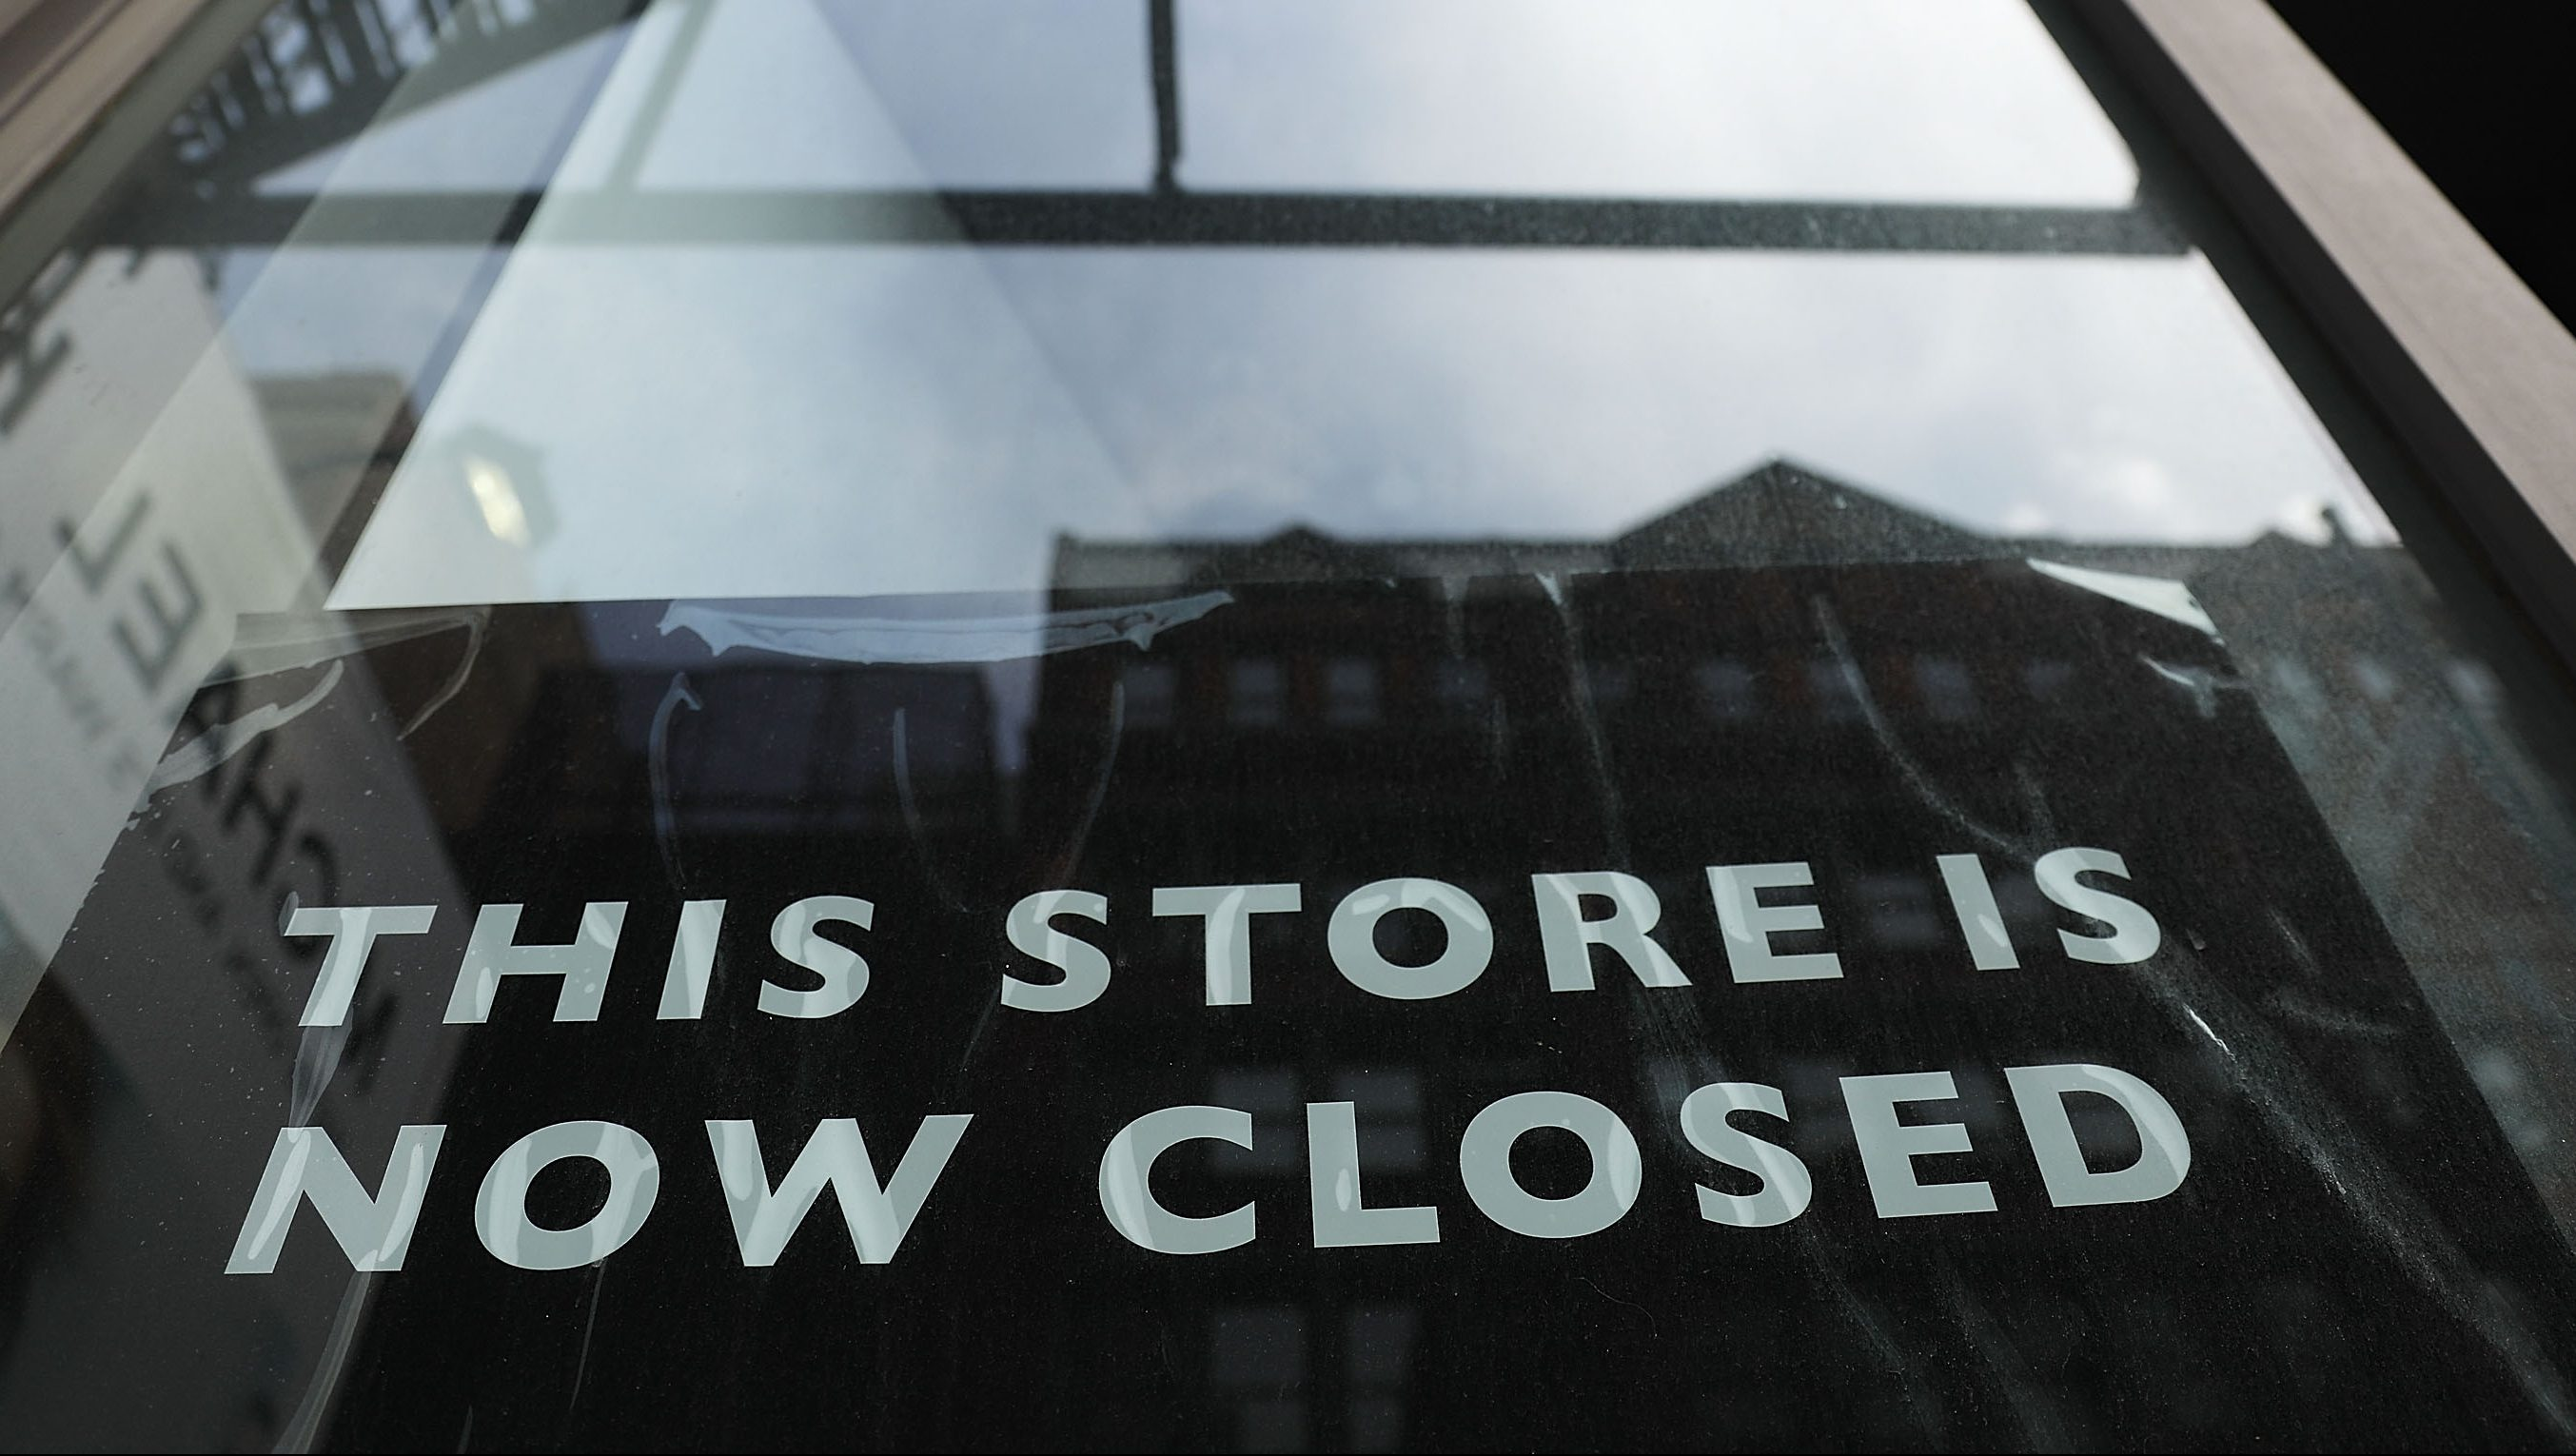 NEW YORK, NY - APRIL 17:  A sign announces the closing of a retail store in lower Manhattan on April 17, 2017 in New York City. As American's shopping habits continue to migrate online, brick-and-mortar stores across the country are closing at an increased rate. For the first time in nearly two years, retail sales declined two months in a row according to recently released figures from the Commerce Department. Millennials, who often prefer Amazon and other online businesses, are also putting more of their money into vacations and restaurants instead of merchandise.  (Photo by Spencer Platt/Getty Images)